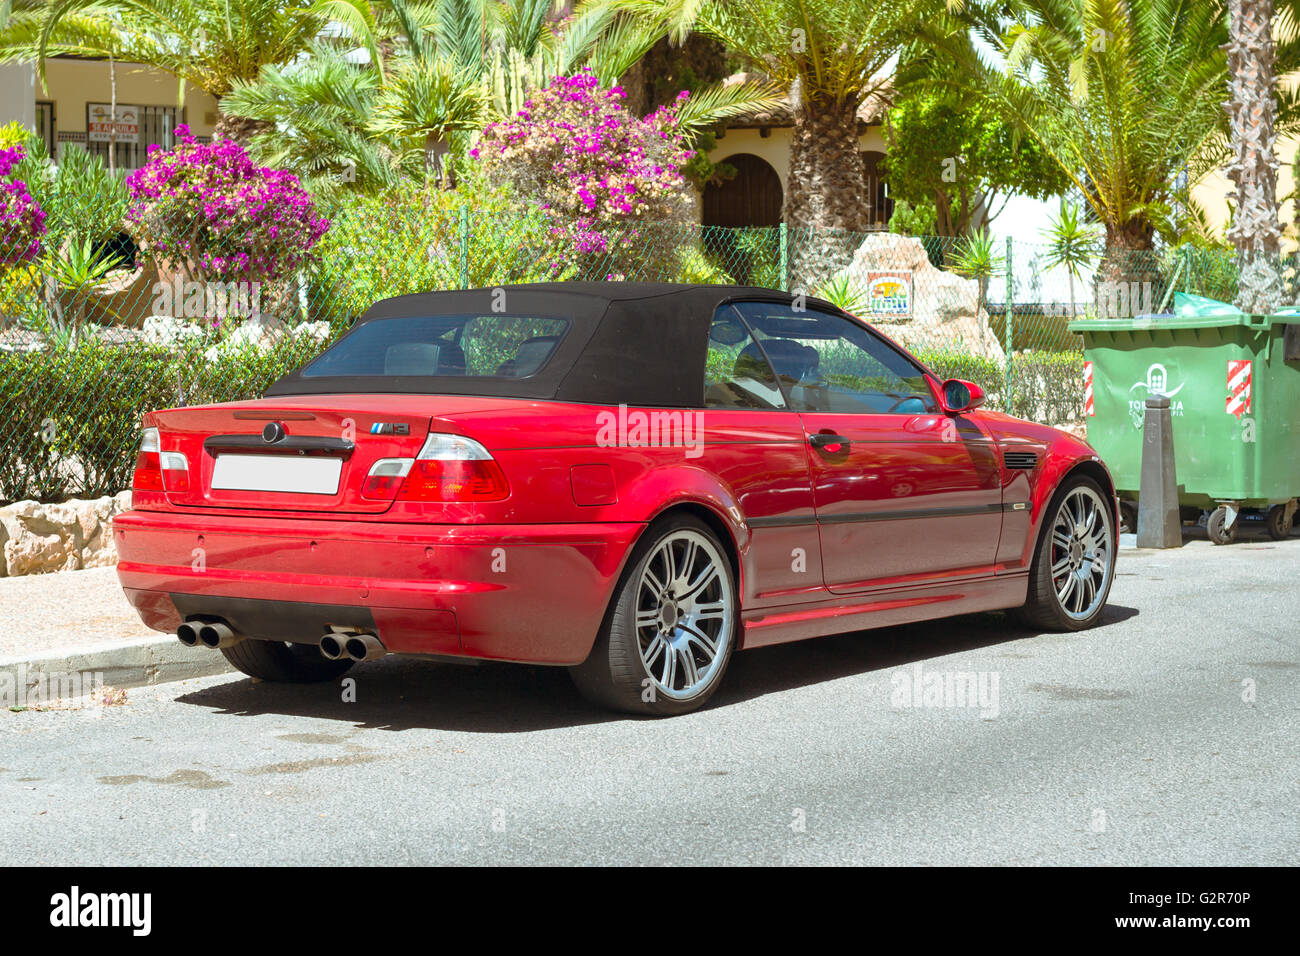 Bmw 3 Series Red Stock Photos Bmw 3 Series Red Stock Images Alamy